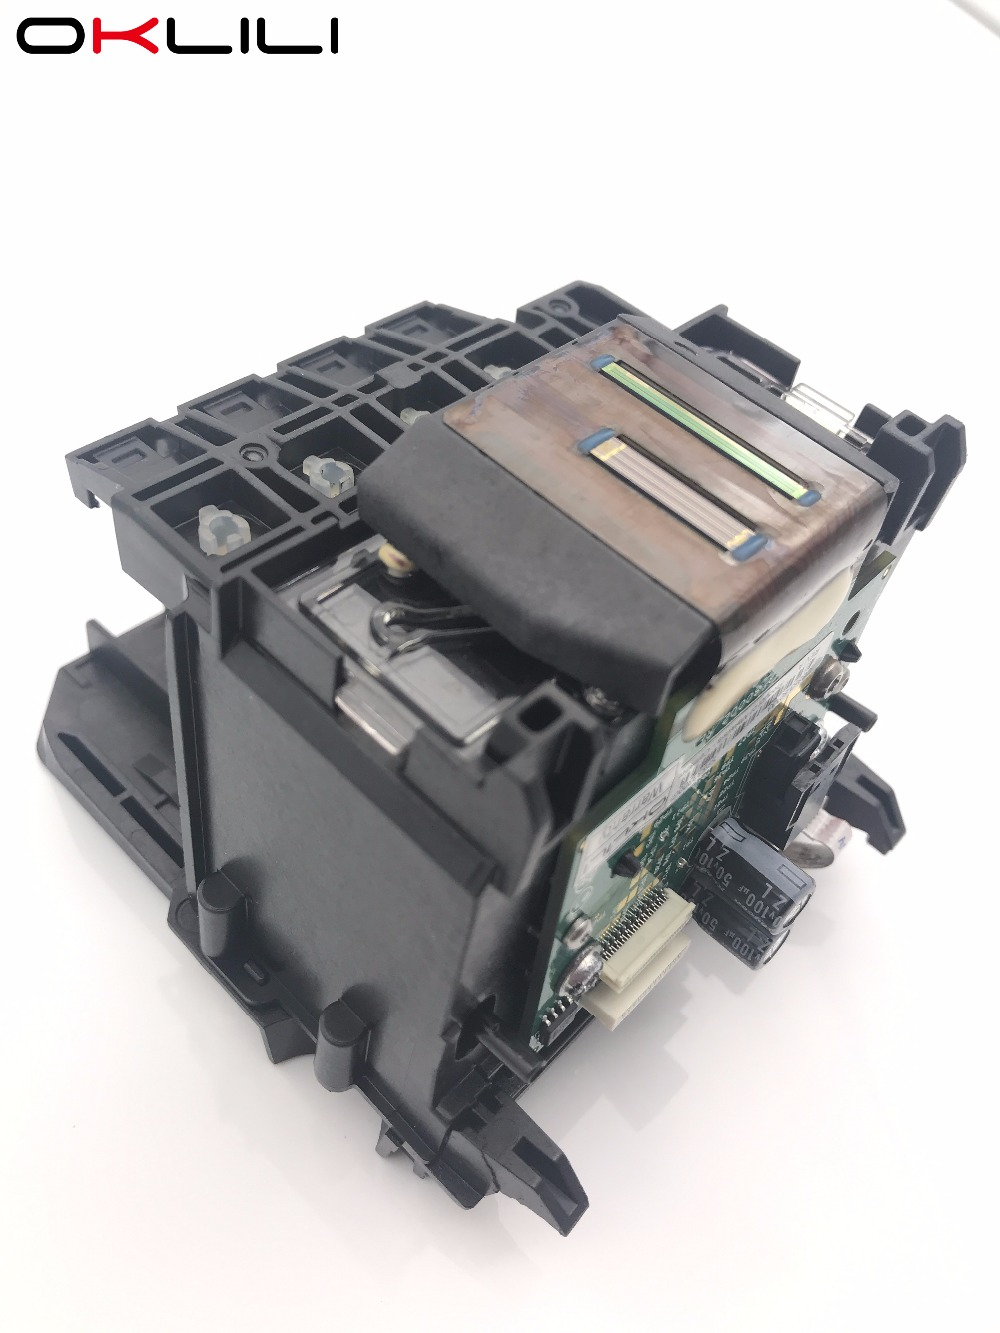 Week's for Remanufactured HP301XL